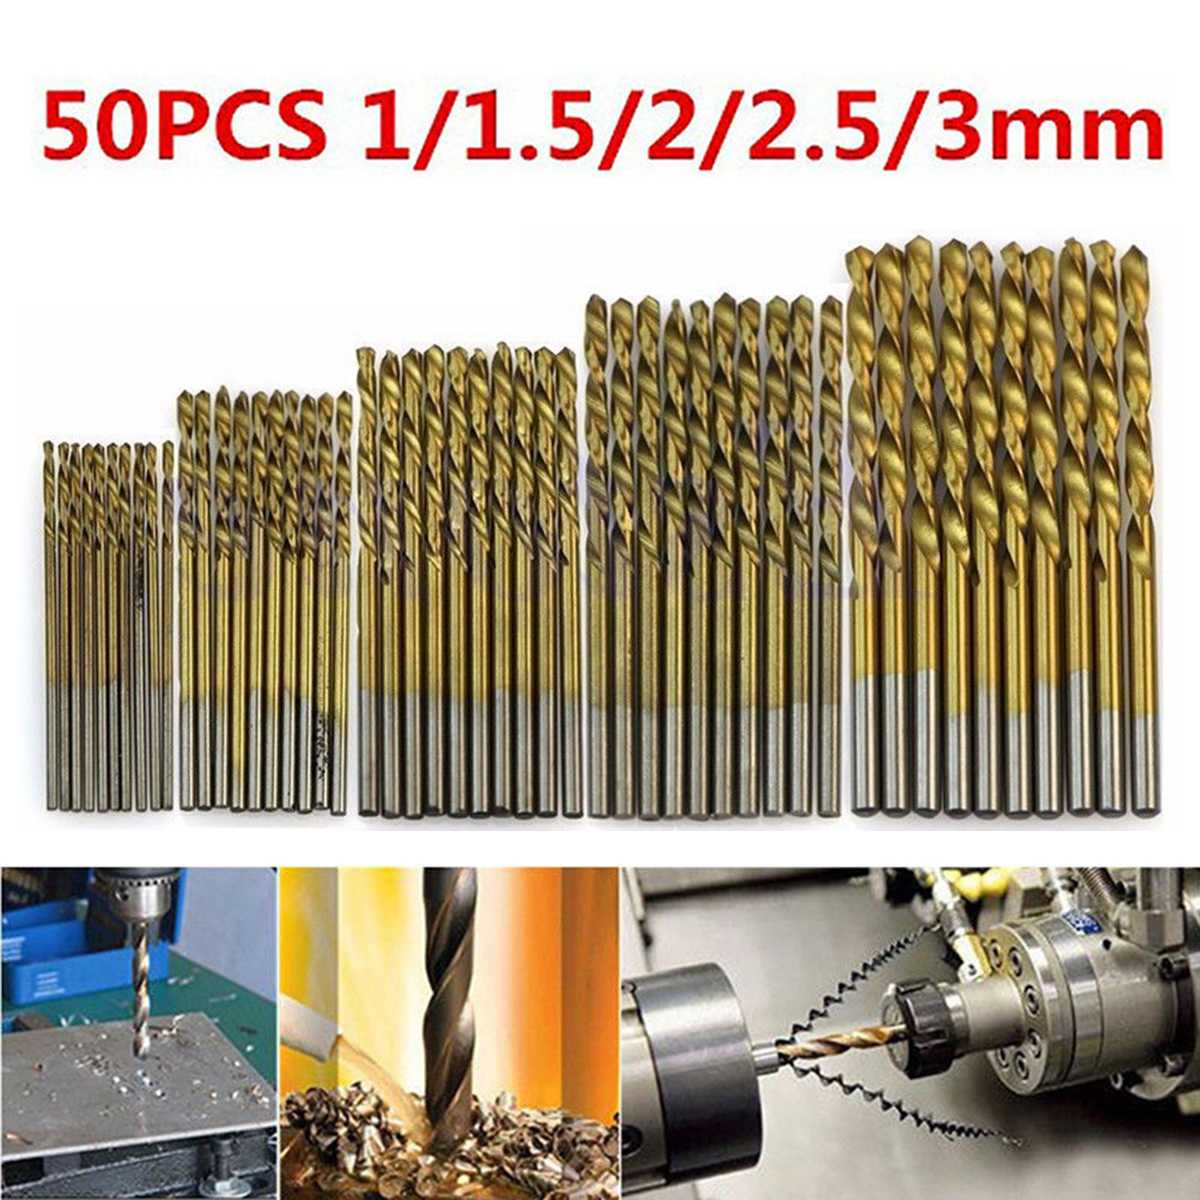 New 50pcs High Speed Steel Twist Drill 1.0/1.5/2.0/2.5/3.0mm Titanium Coated HSS Drill Woodworking Hand Tools Drill Bit Set